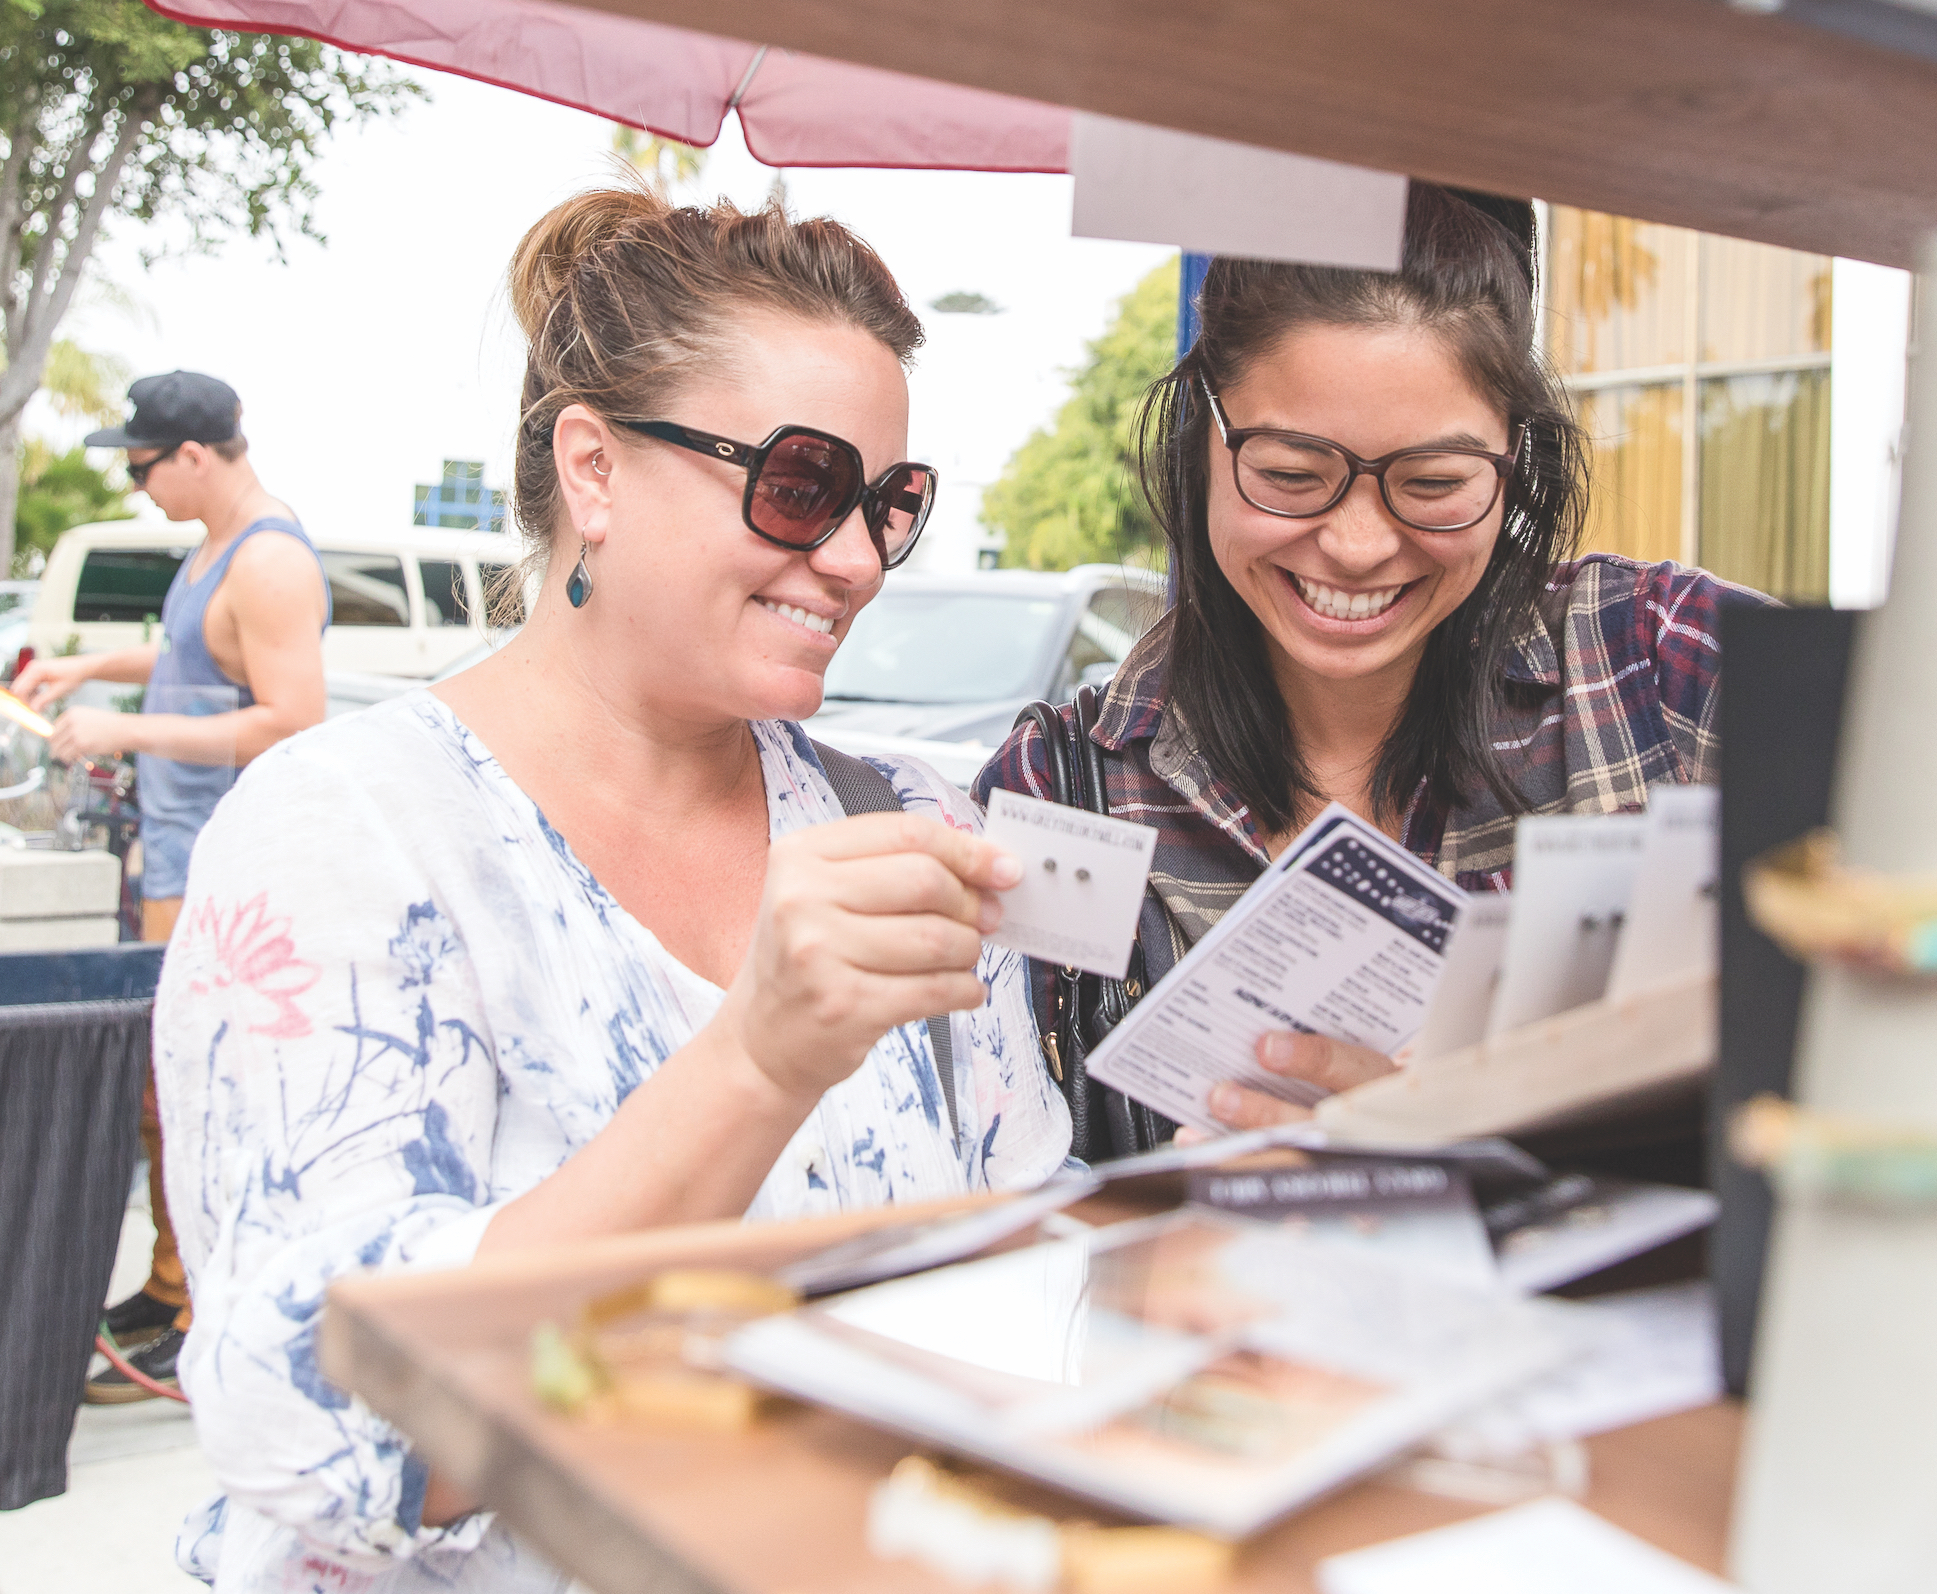 Shop small programs continue in Carlsbad, Oceanside for holiday season